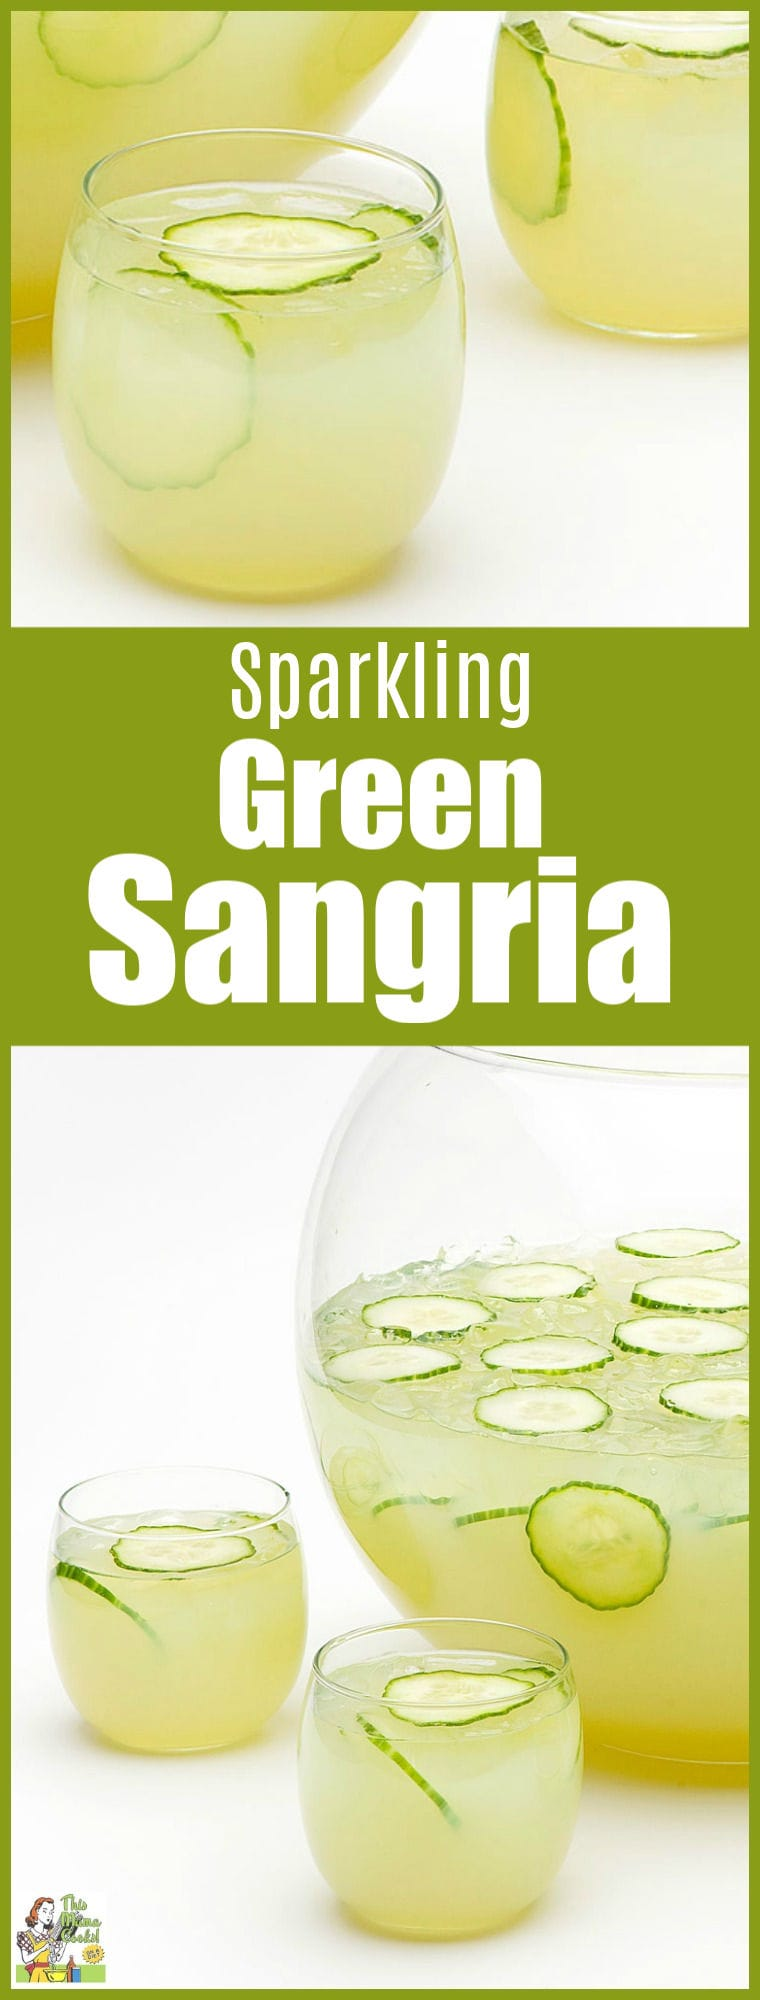 Looking for a green drink alternative to yucky green beer? Try this refreshing gluten free Sparkling Green Sangria recipe for St. Patricks Day. It\'s a skinny green cocktail alternative! Your party guests will love this green drink alcohol recipe! #stpatricksday #green #cocktails #cocktailrecipes #drinks #drinking #sangria #glutenfree